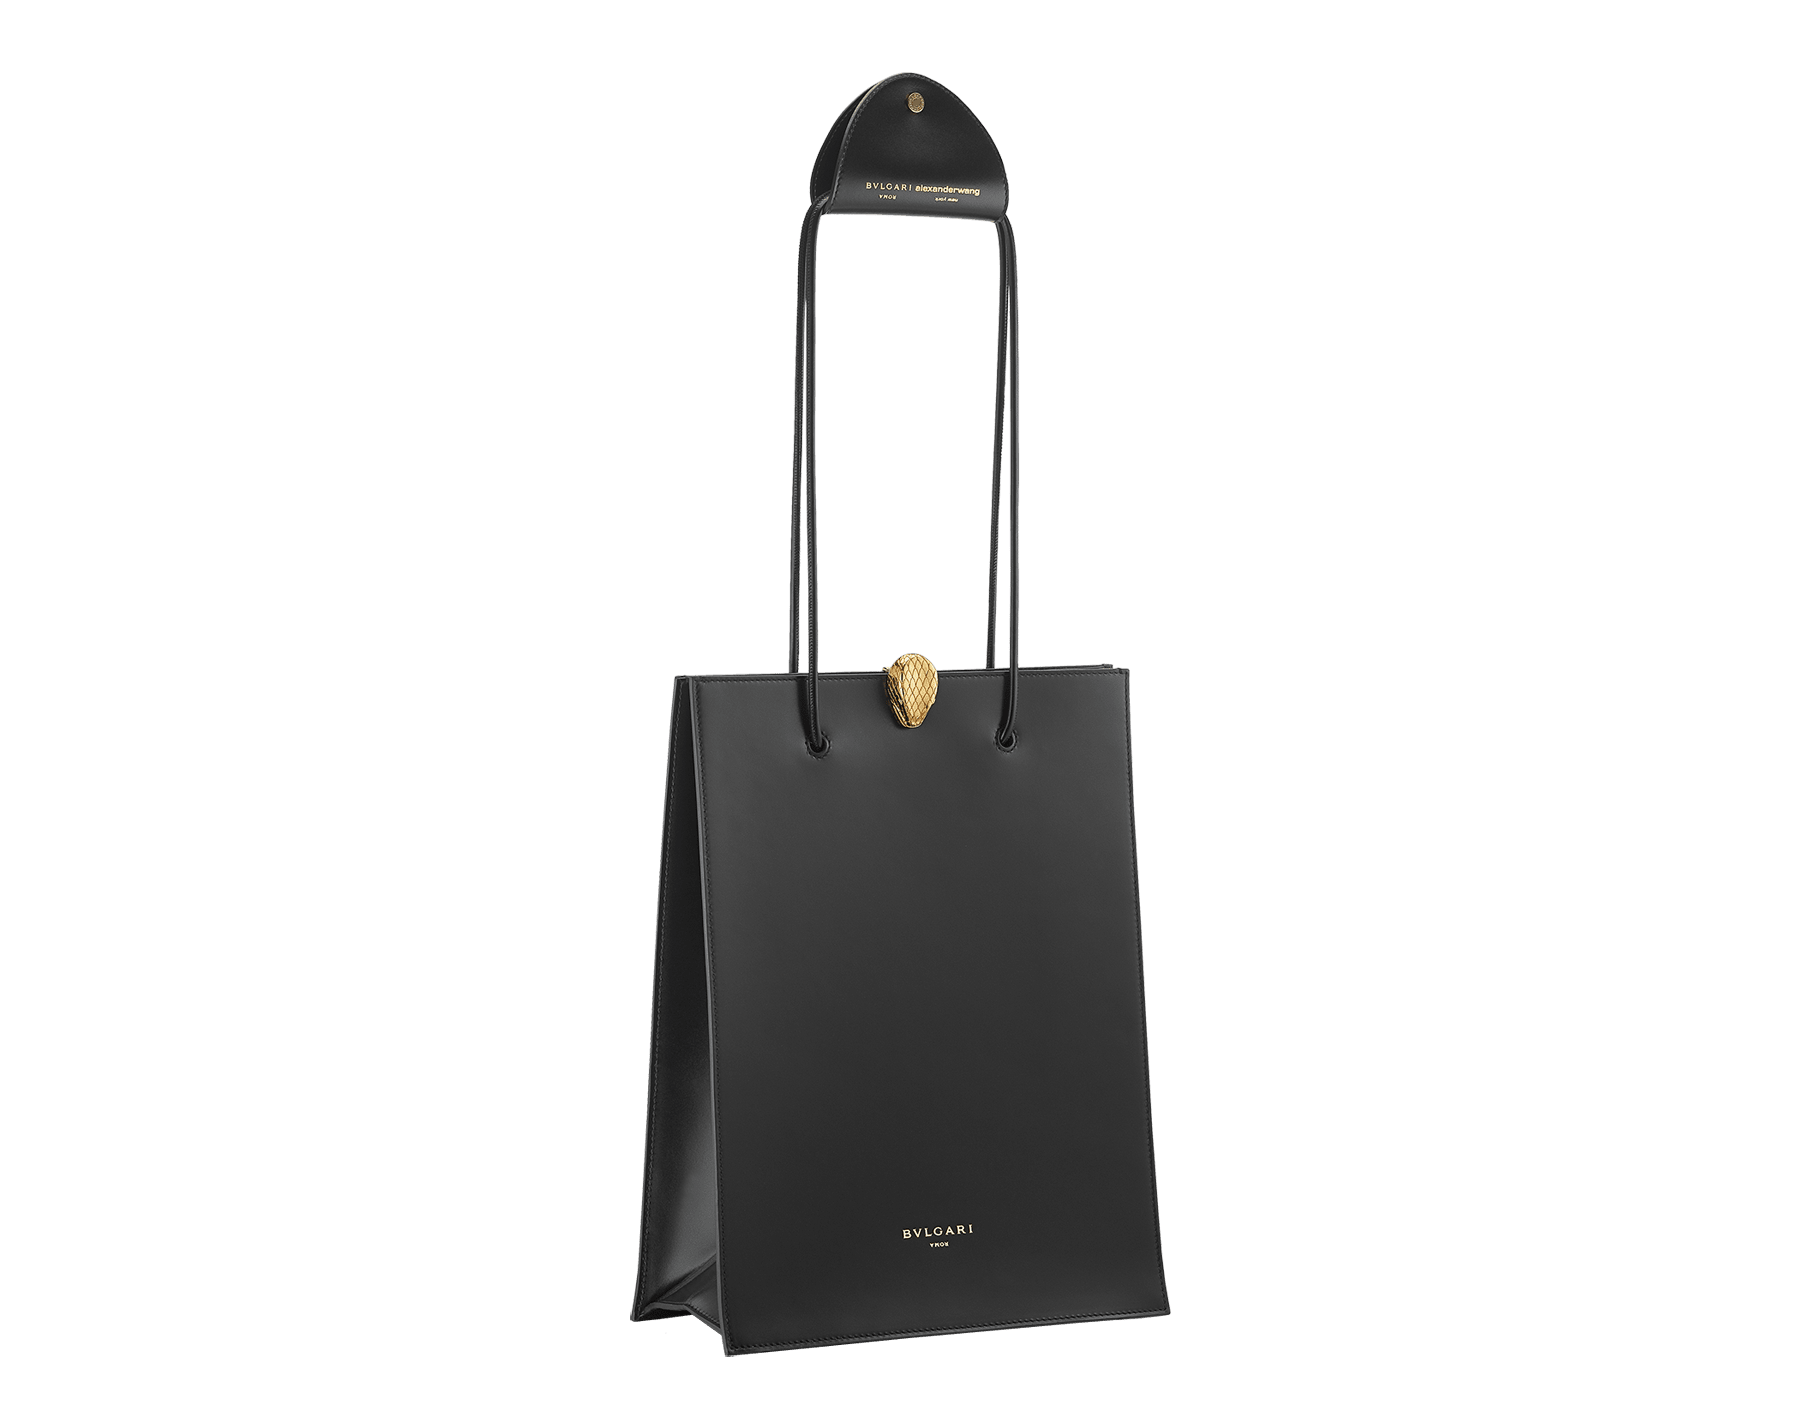 Alexander Wang x Bvlgari shopping tote bag in smooth black calf leather. New Serpenti head closure in antique gold plated brass with tempting red enamel eyes. Limited edition. 288733 image 2